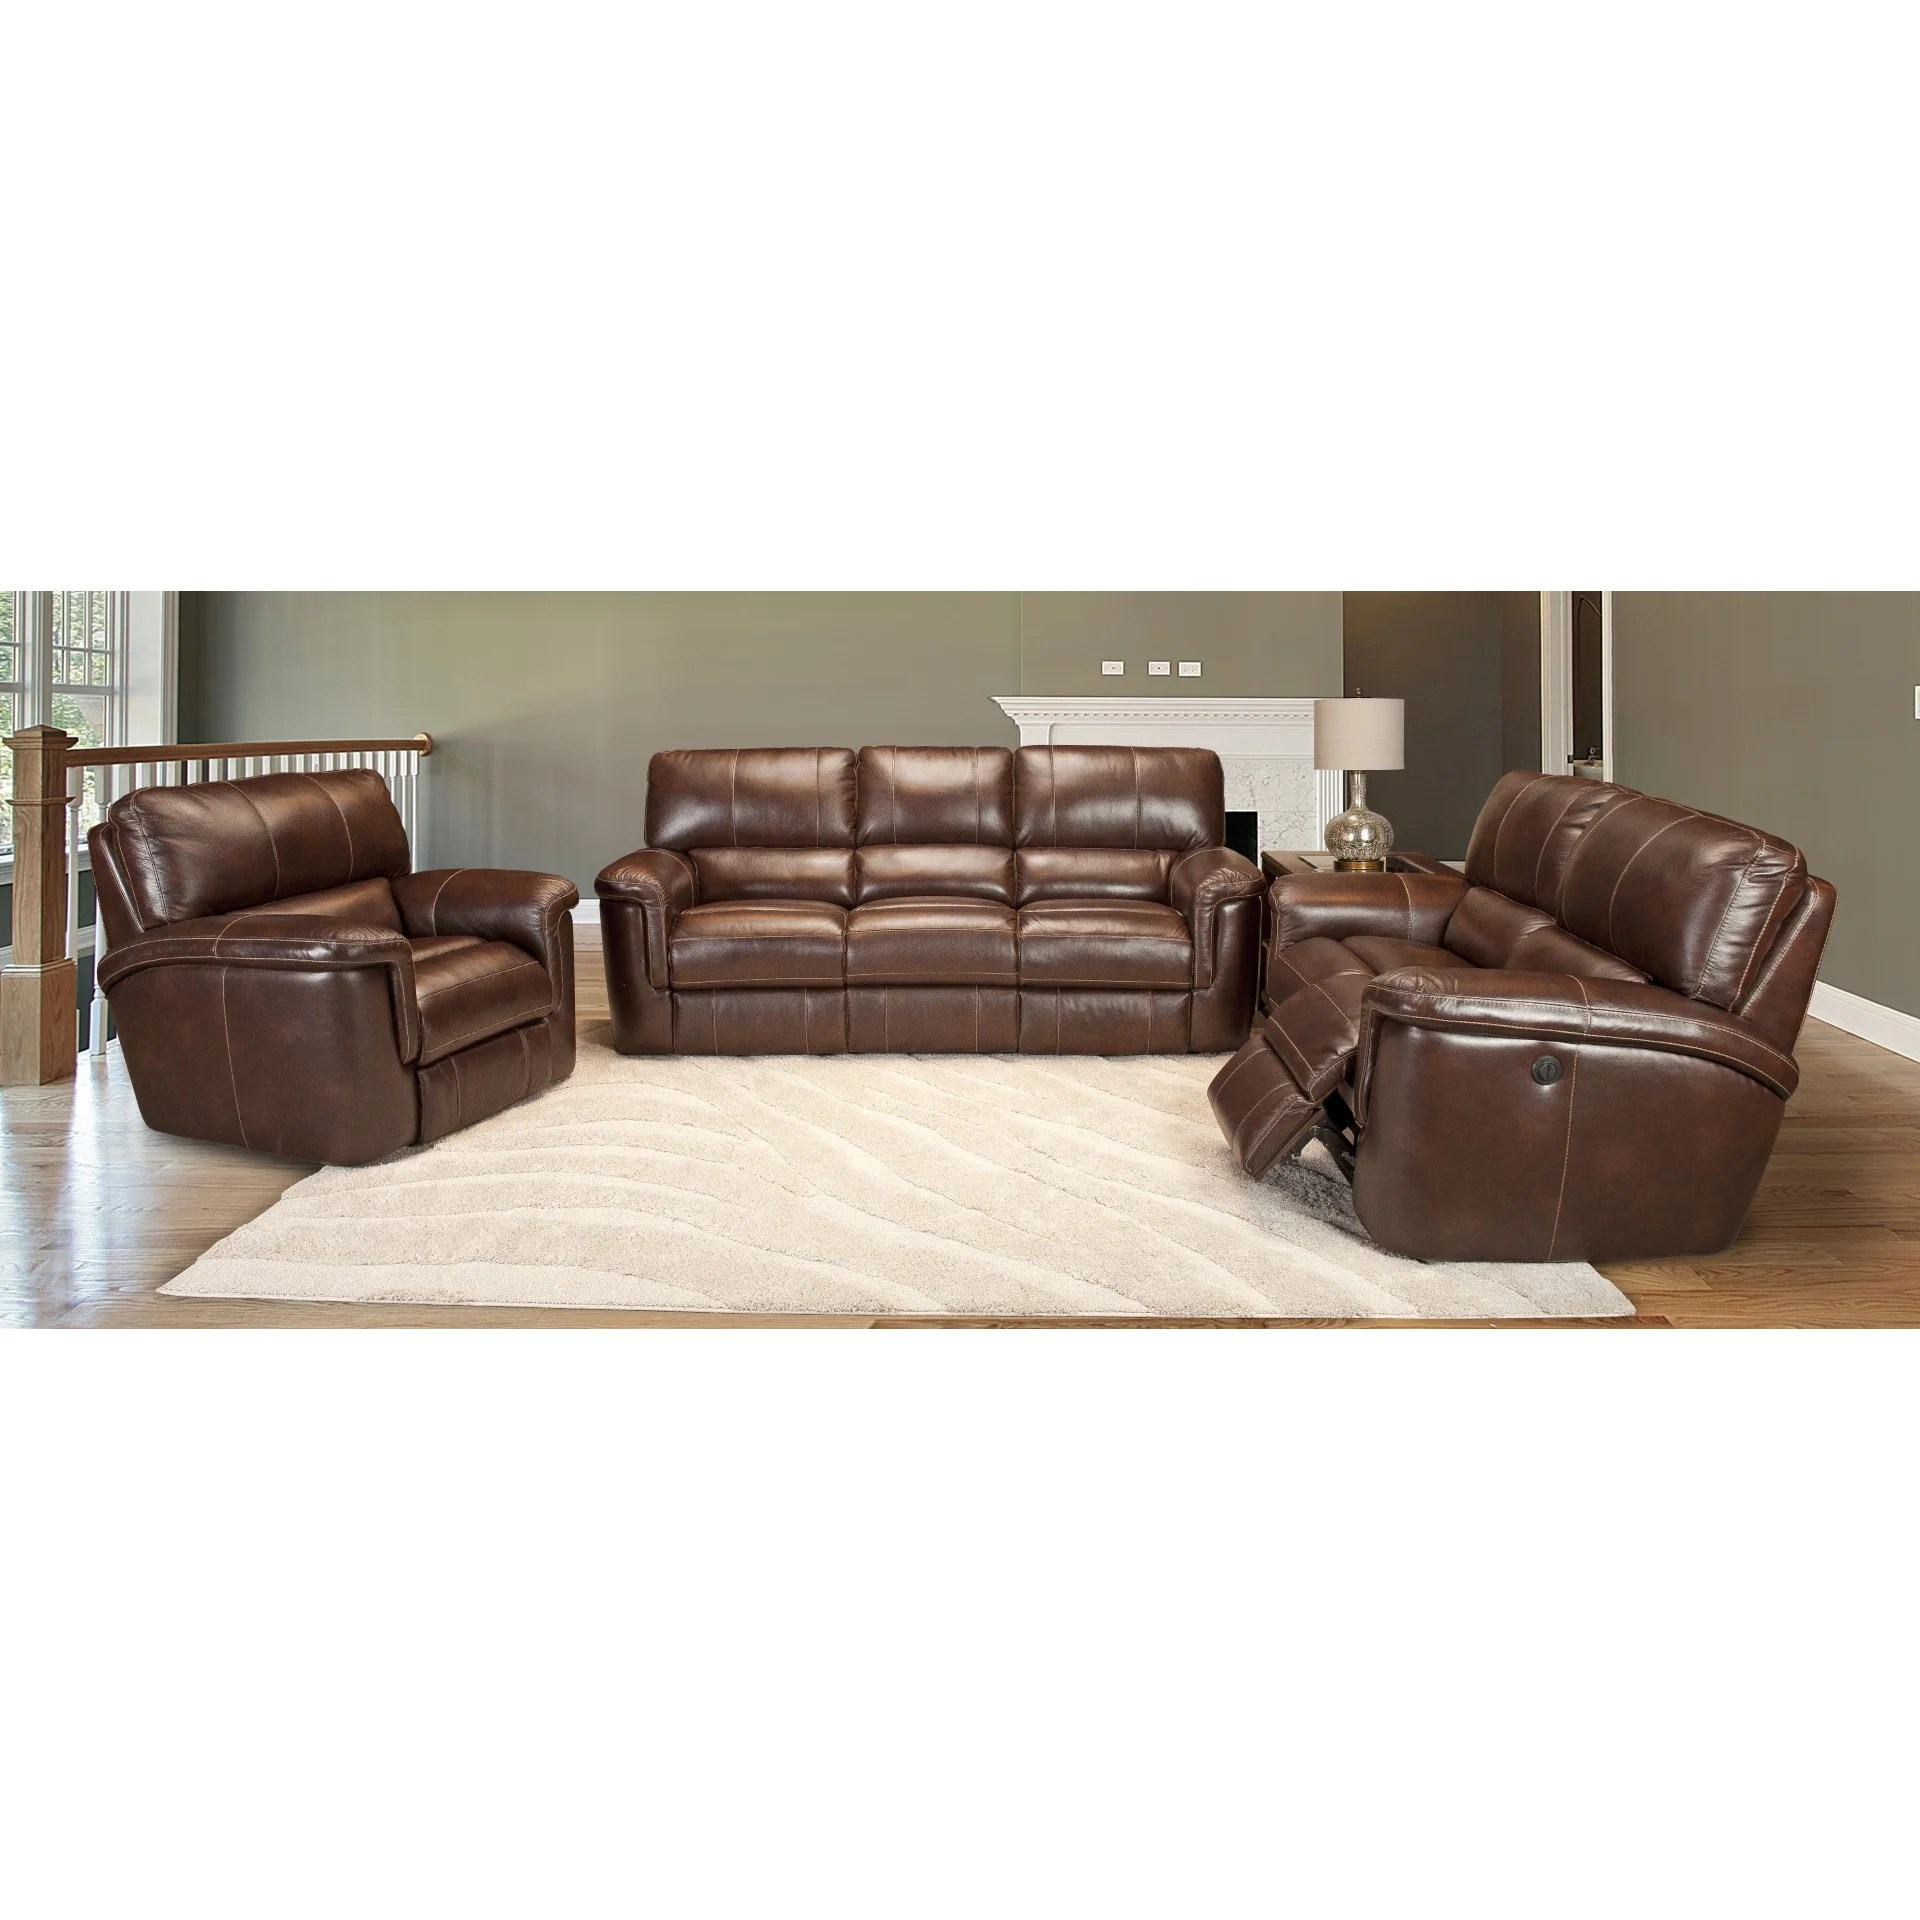 parker leather sofa reviews funda chaise longue el corte ingles house hitchcock dual power reclining